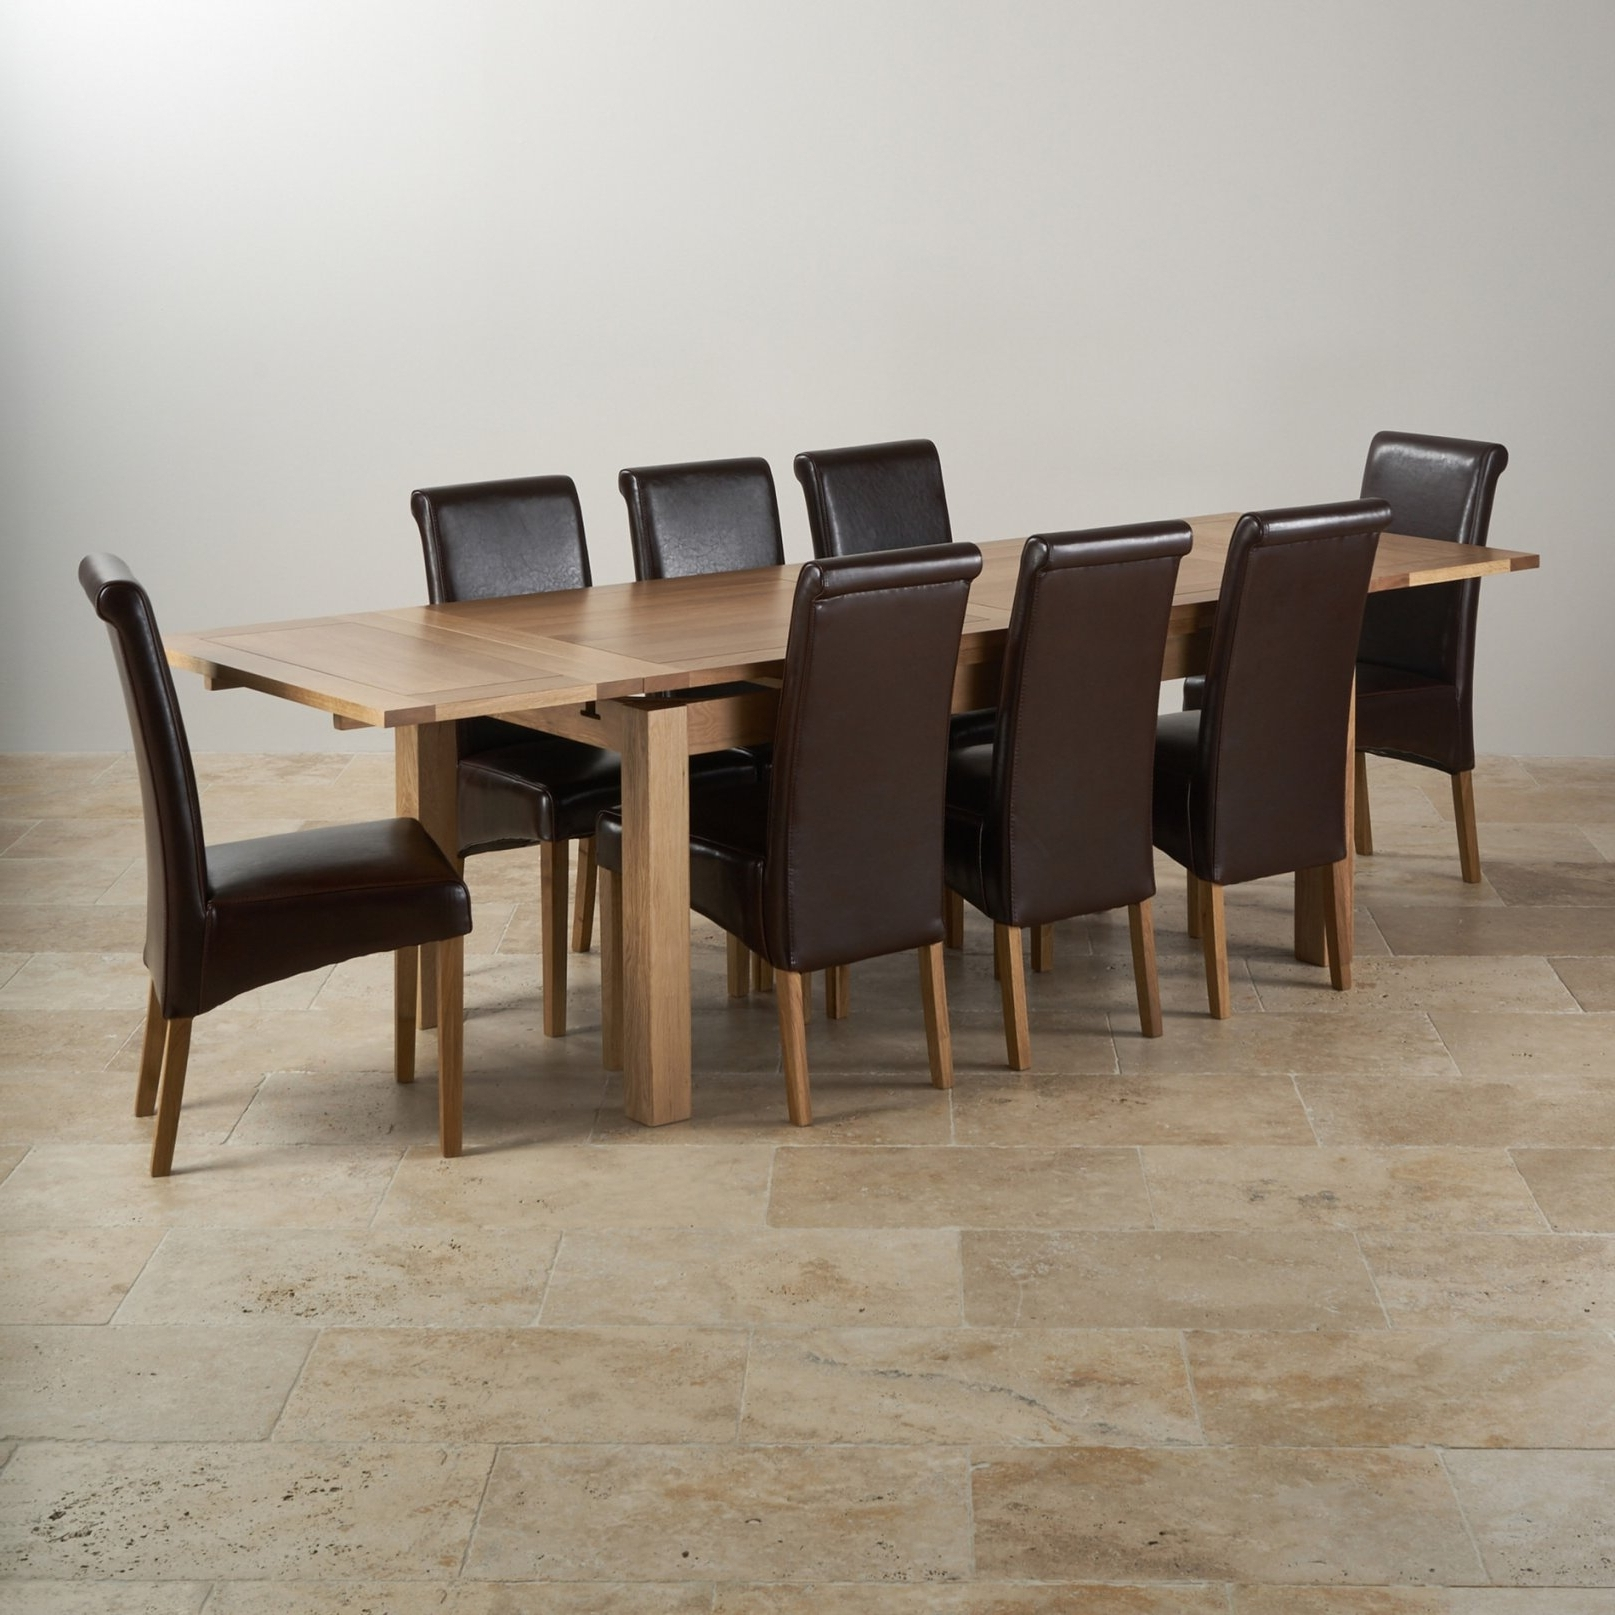 Popular Sophisticated Dorset Oak Dining Set 6Ft Table With 8 Chairs For For In Oak Dining Tables 8 Chairs (View 17 of 25)